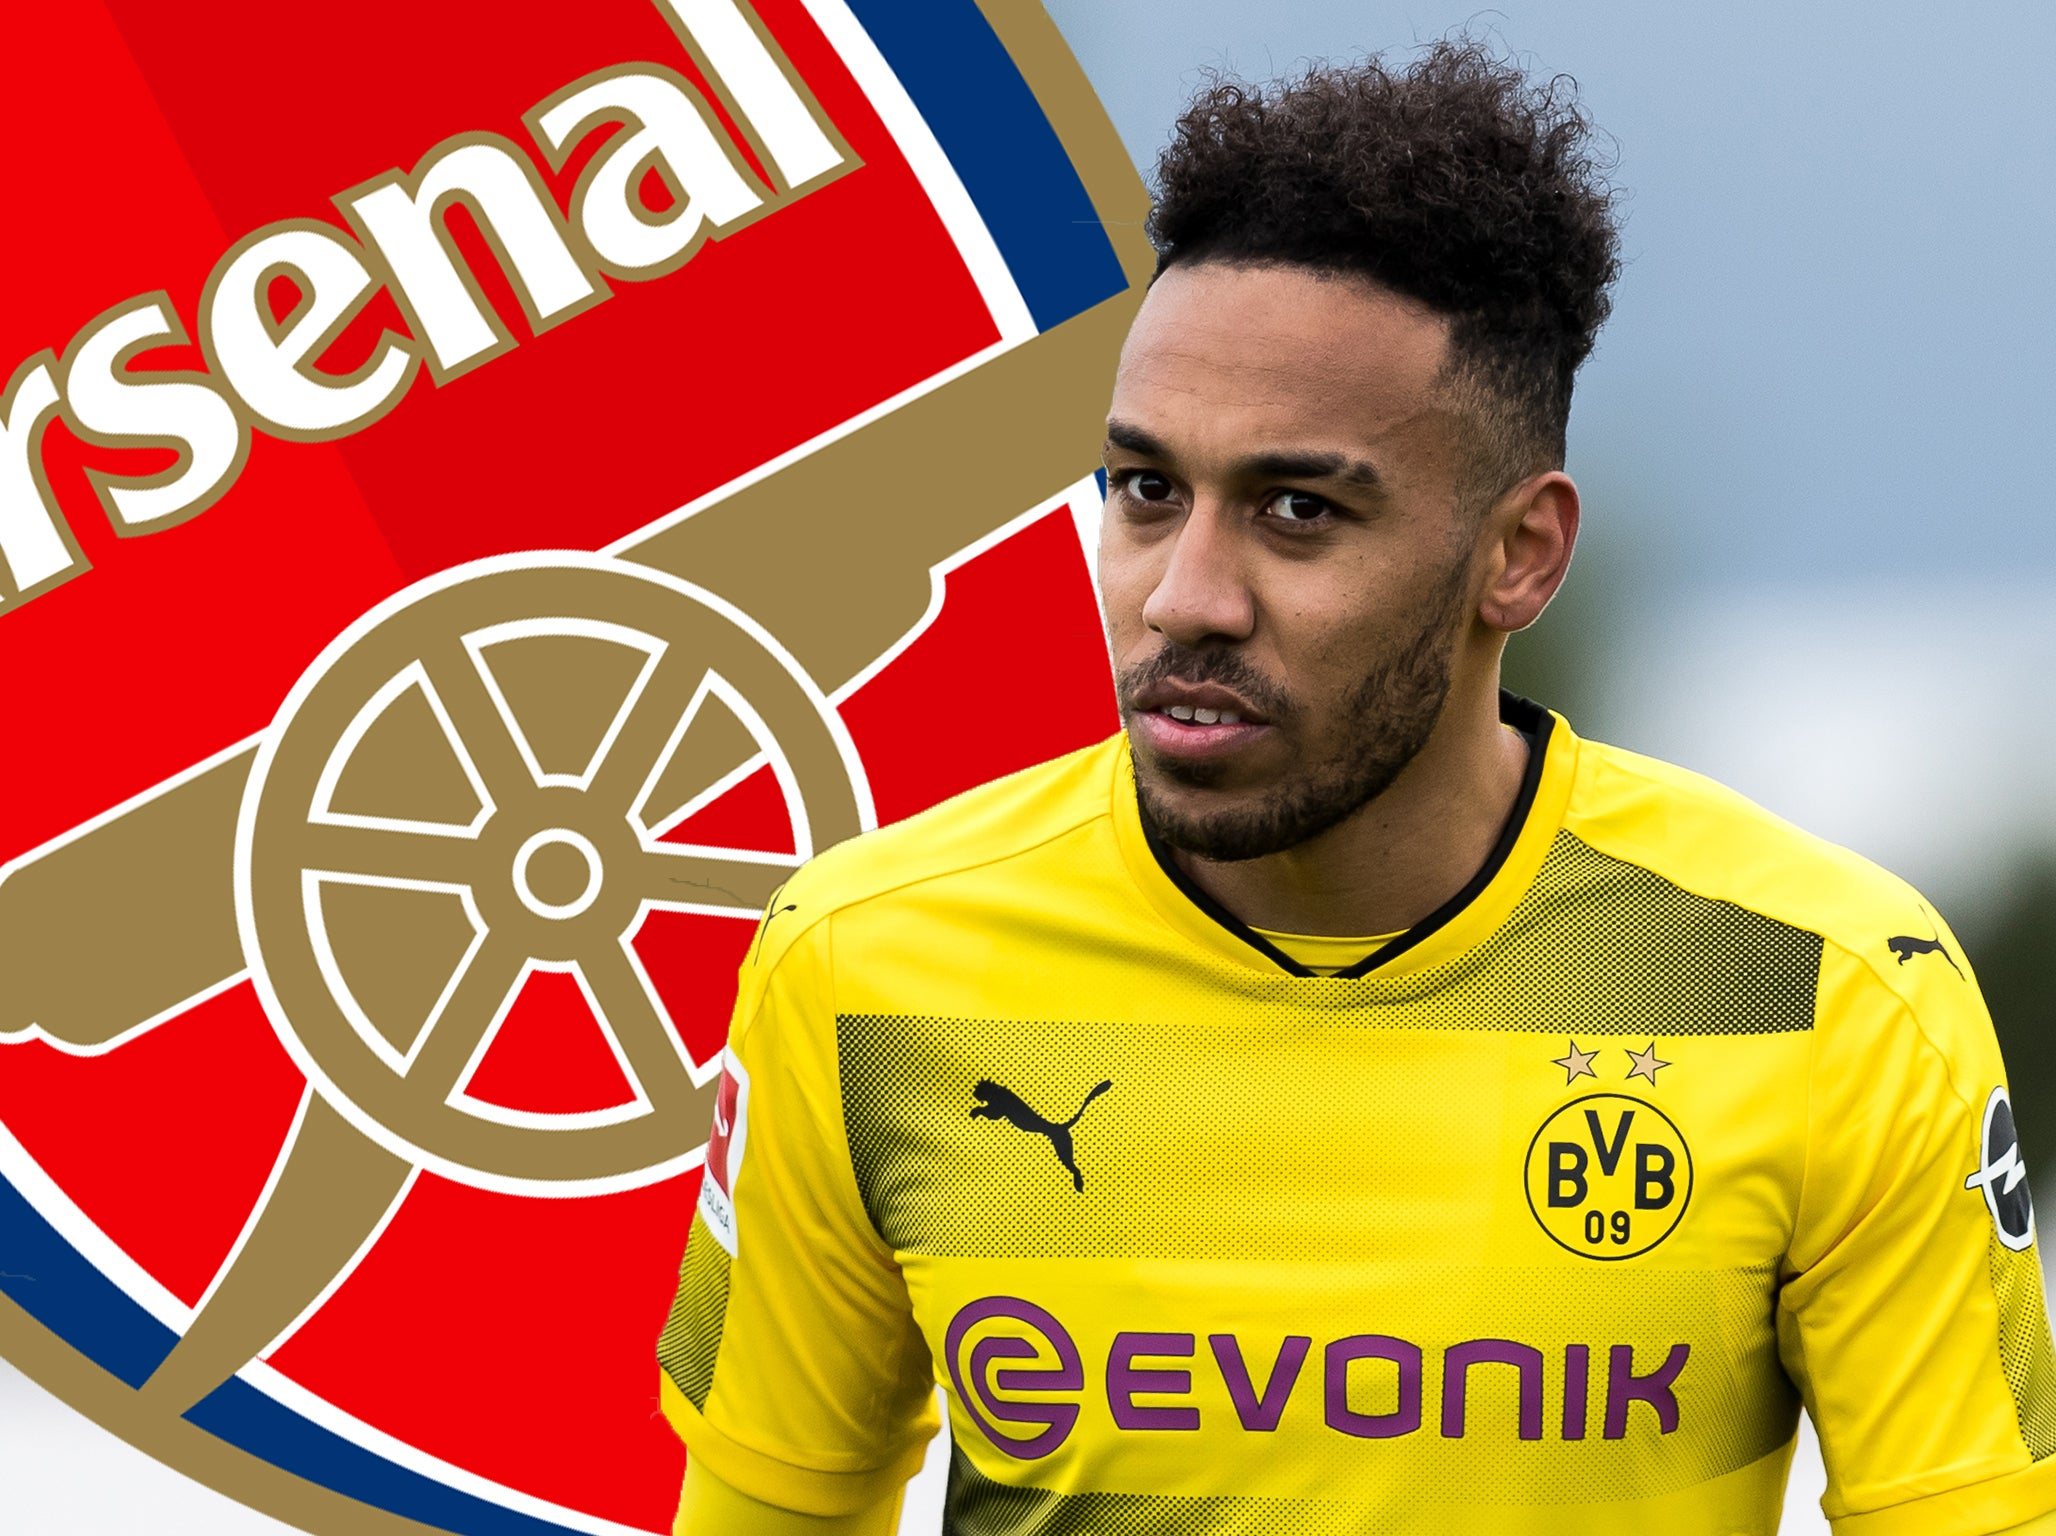 Transfer news LIVE: Arsenal bid again for Aubameyang, Manchester United target next signing, Chelsea to seal double deal